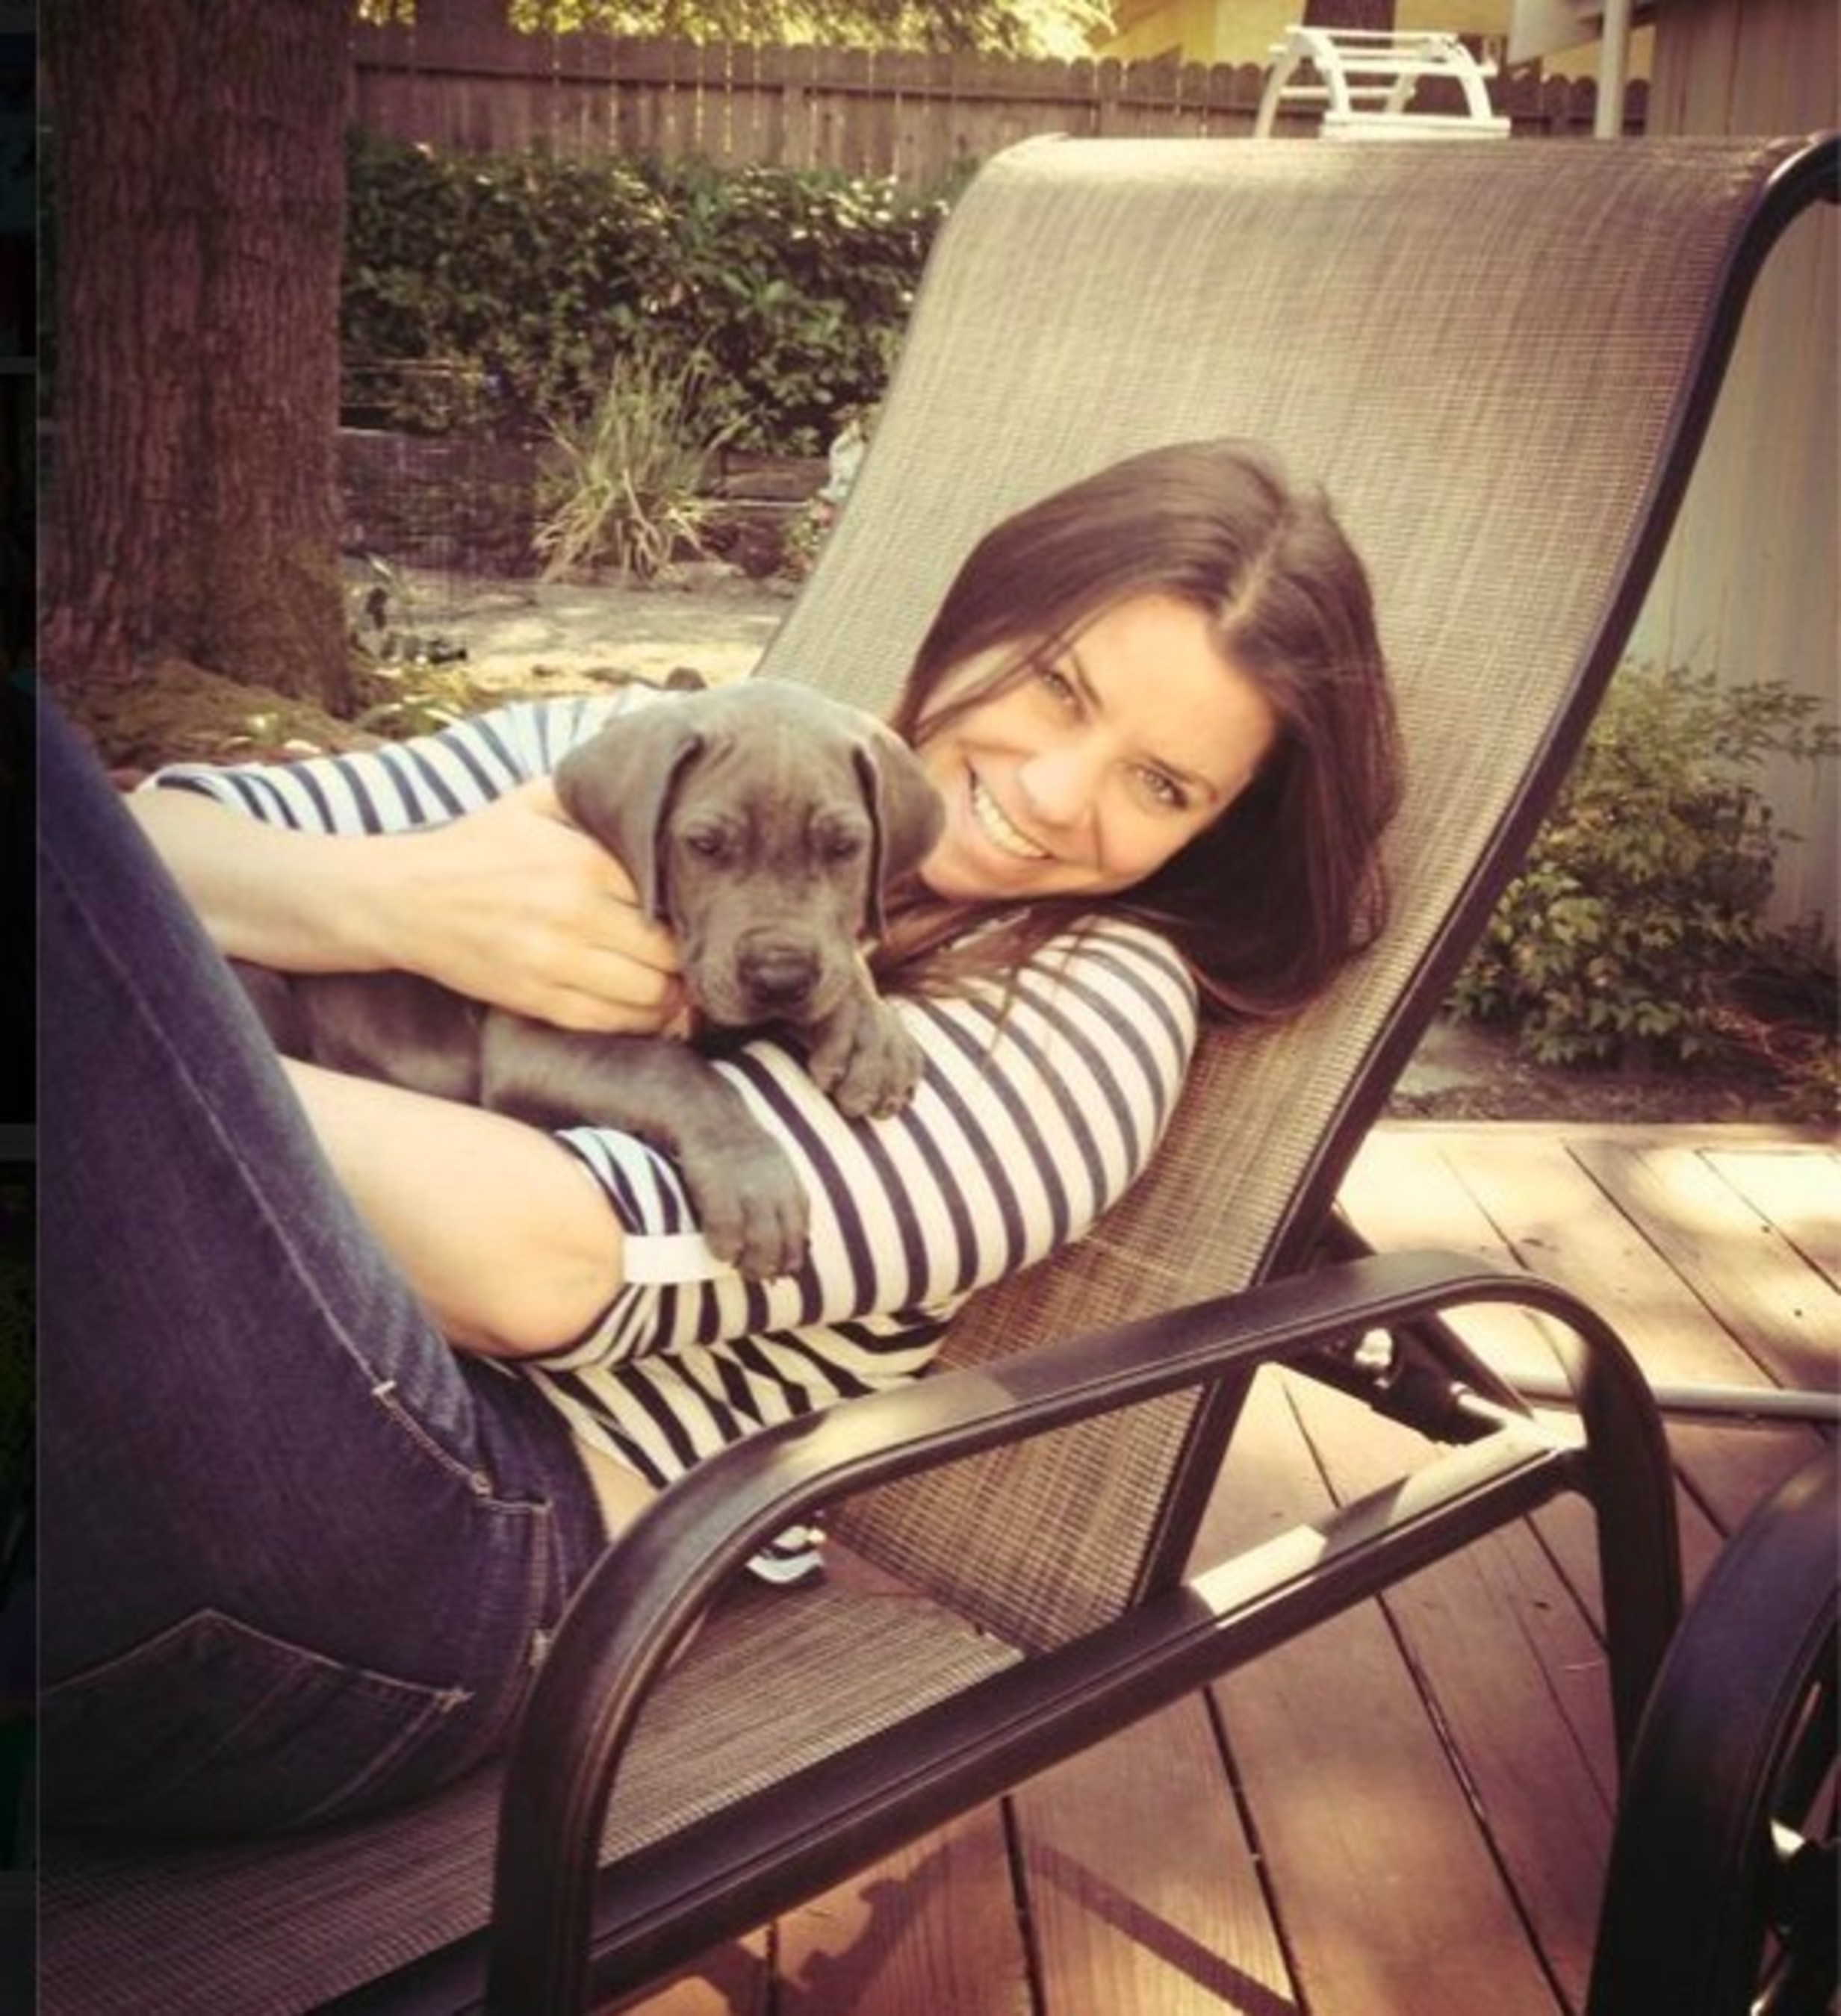 Death-with-dignity advocate Brittany Maynard